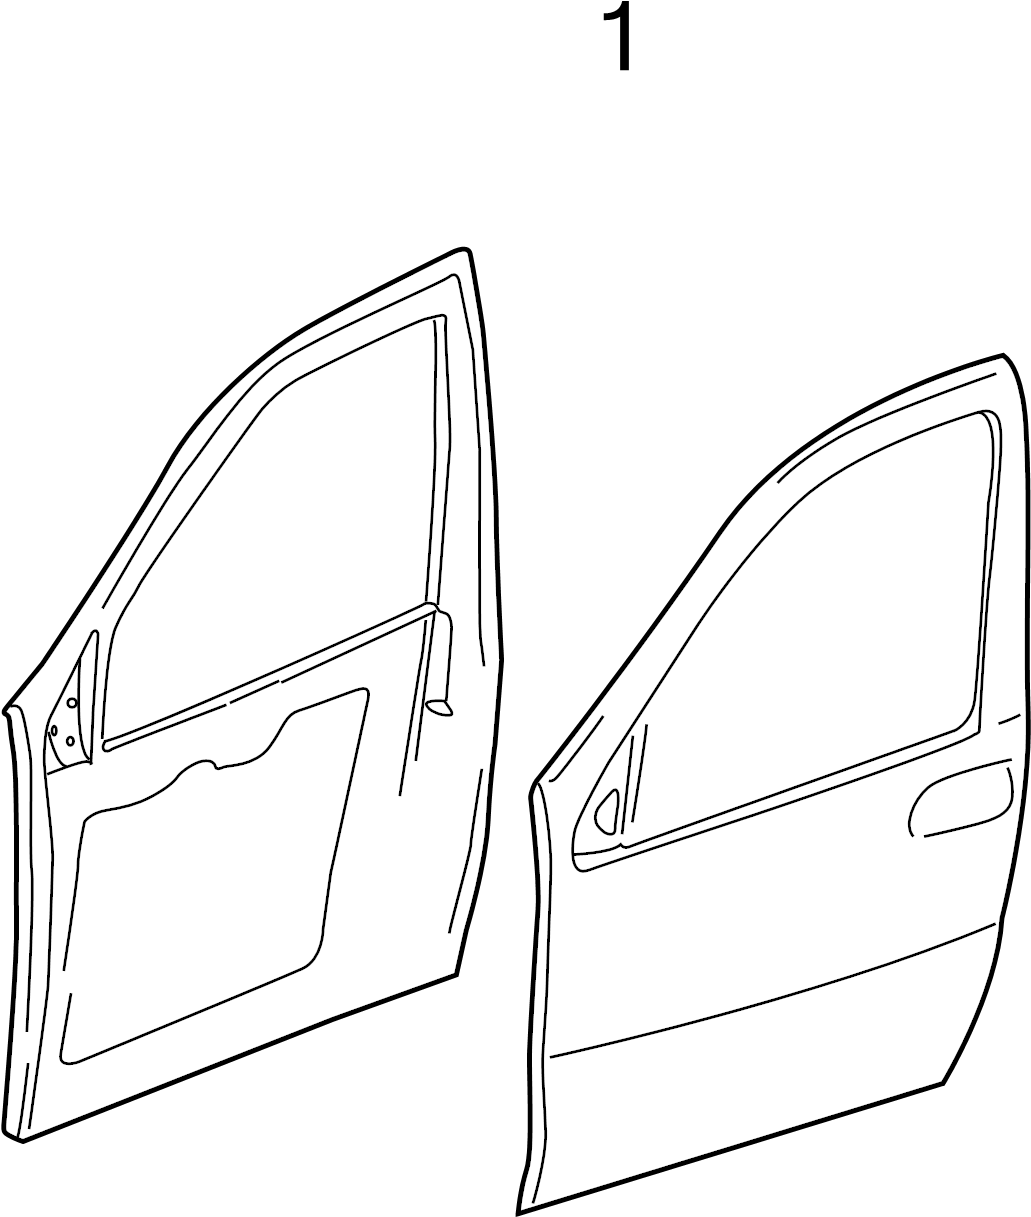 Pontiac Montana Sv6 Parts Diagrams